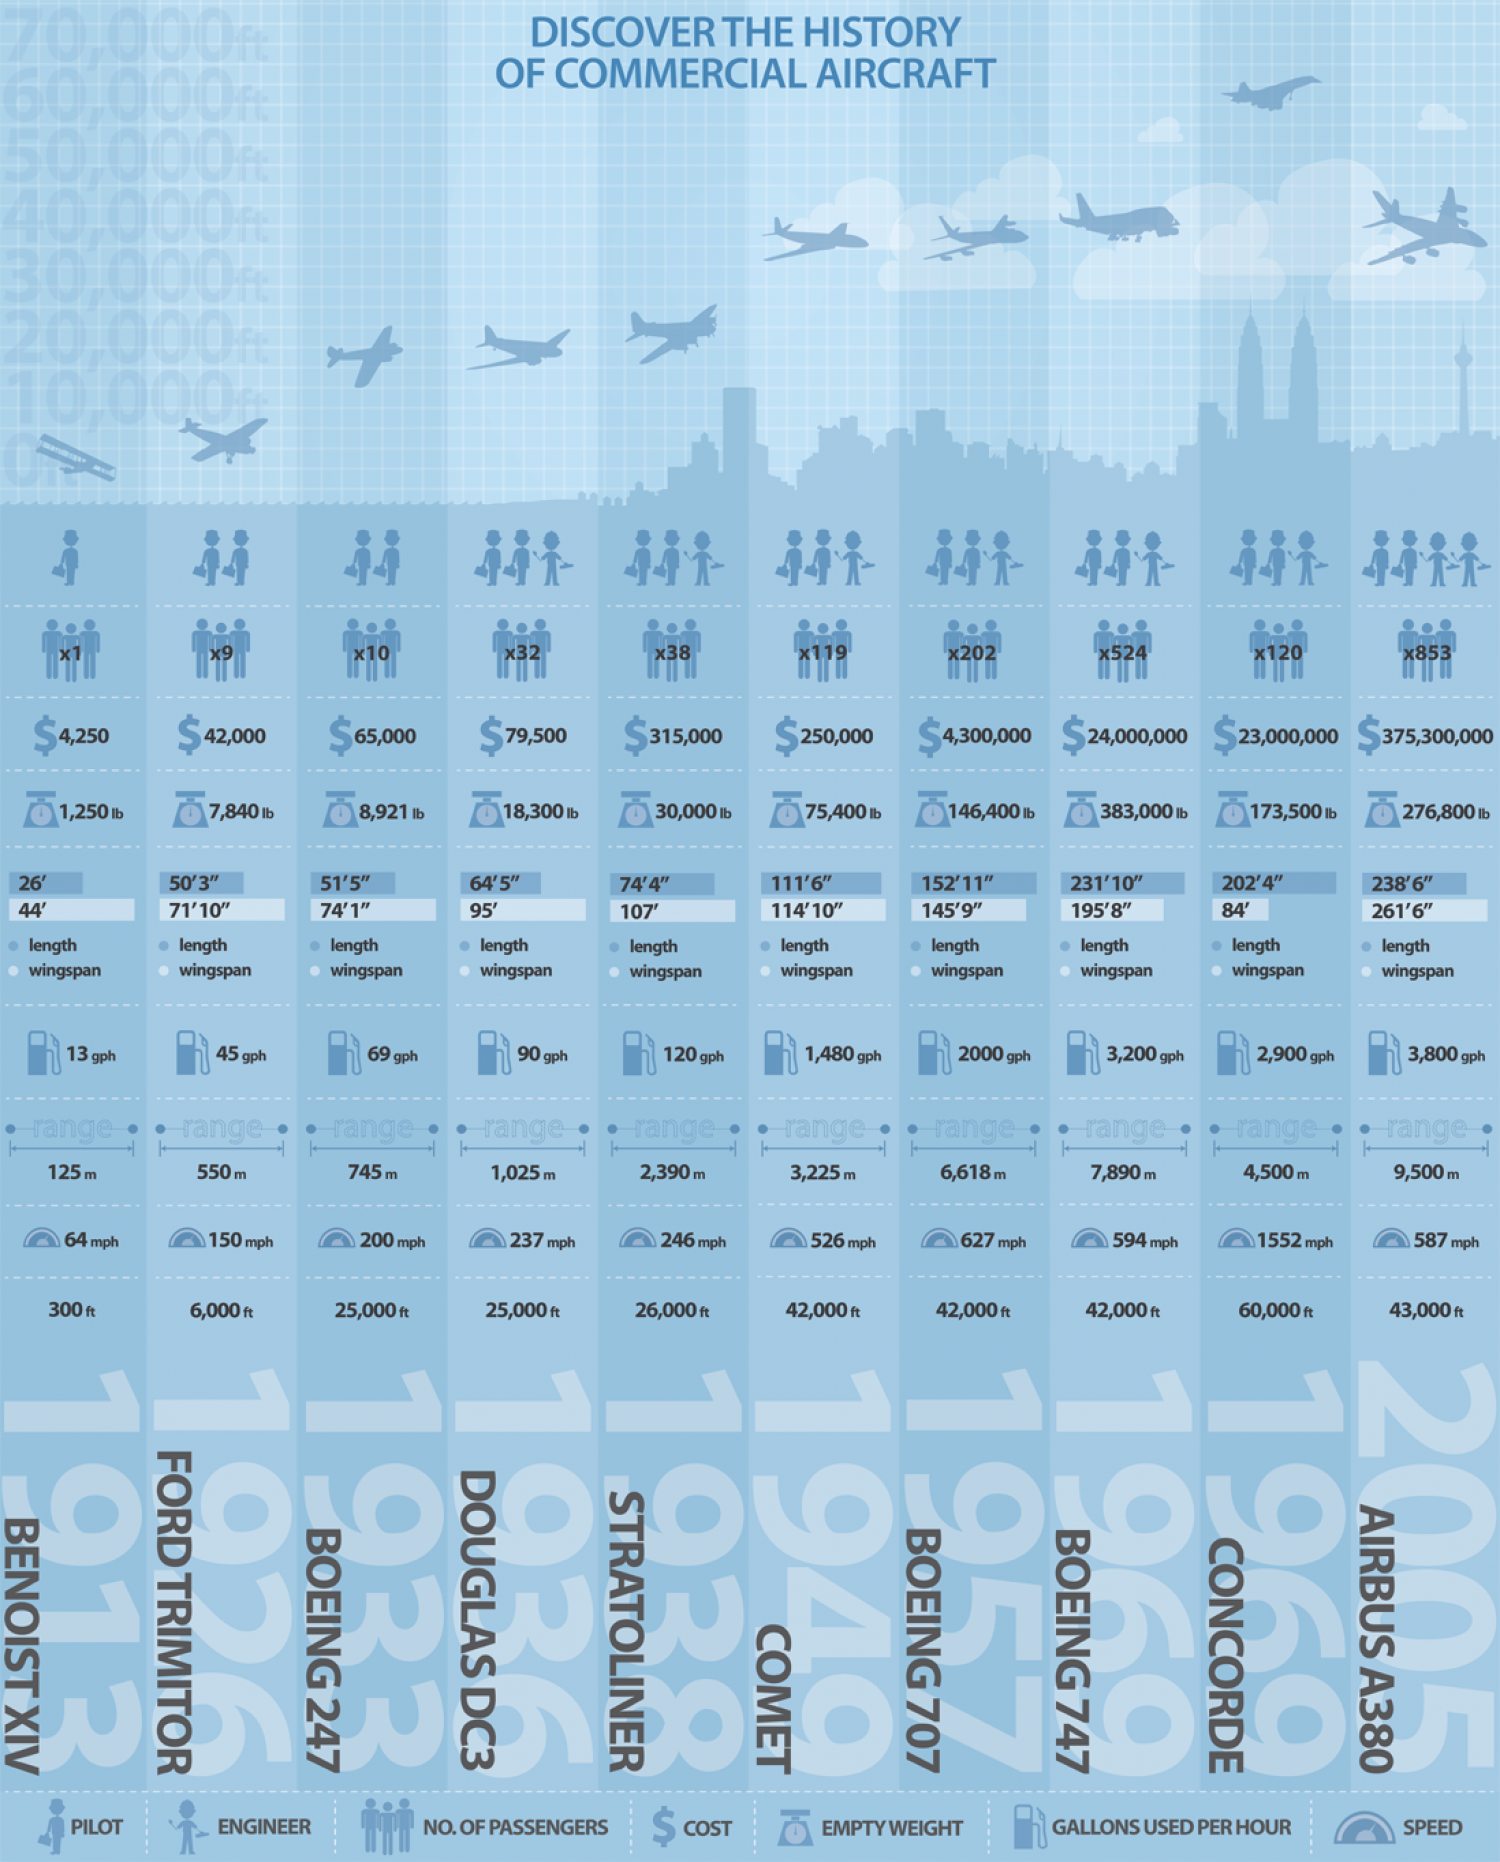 Discover the History of Commercial Aircraft Infographic